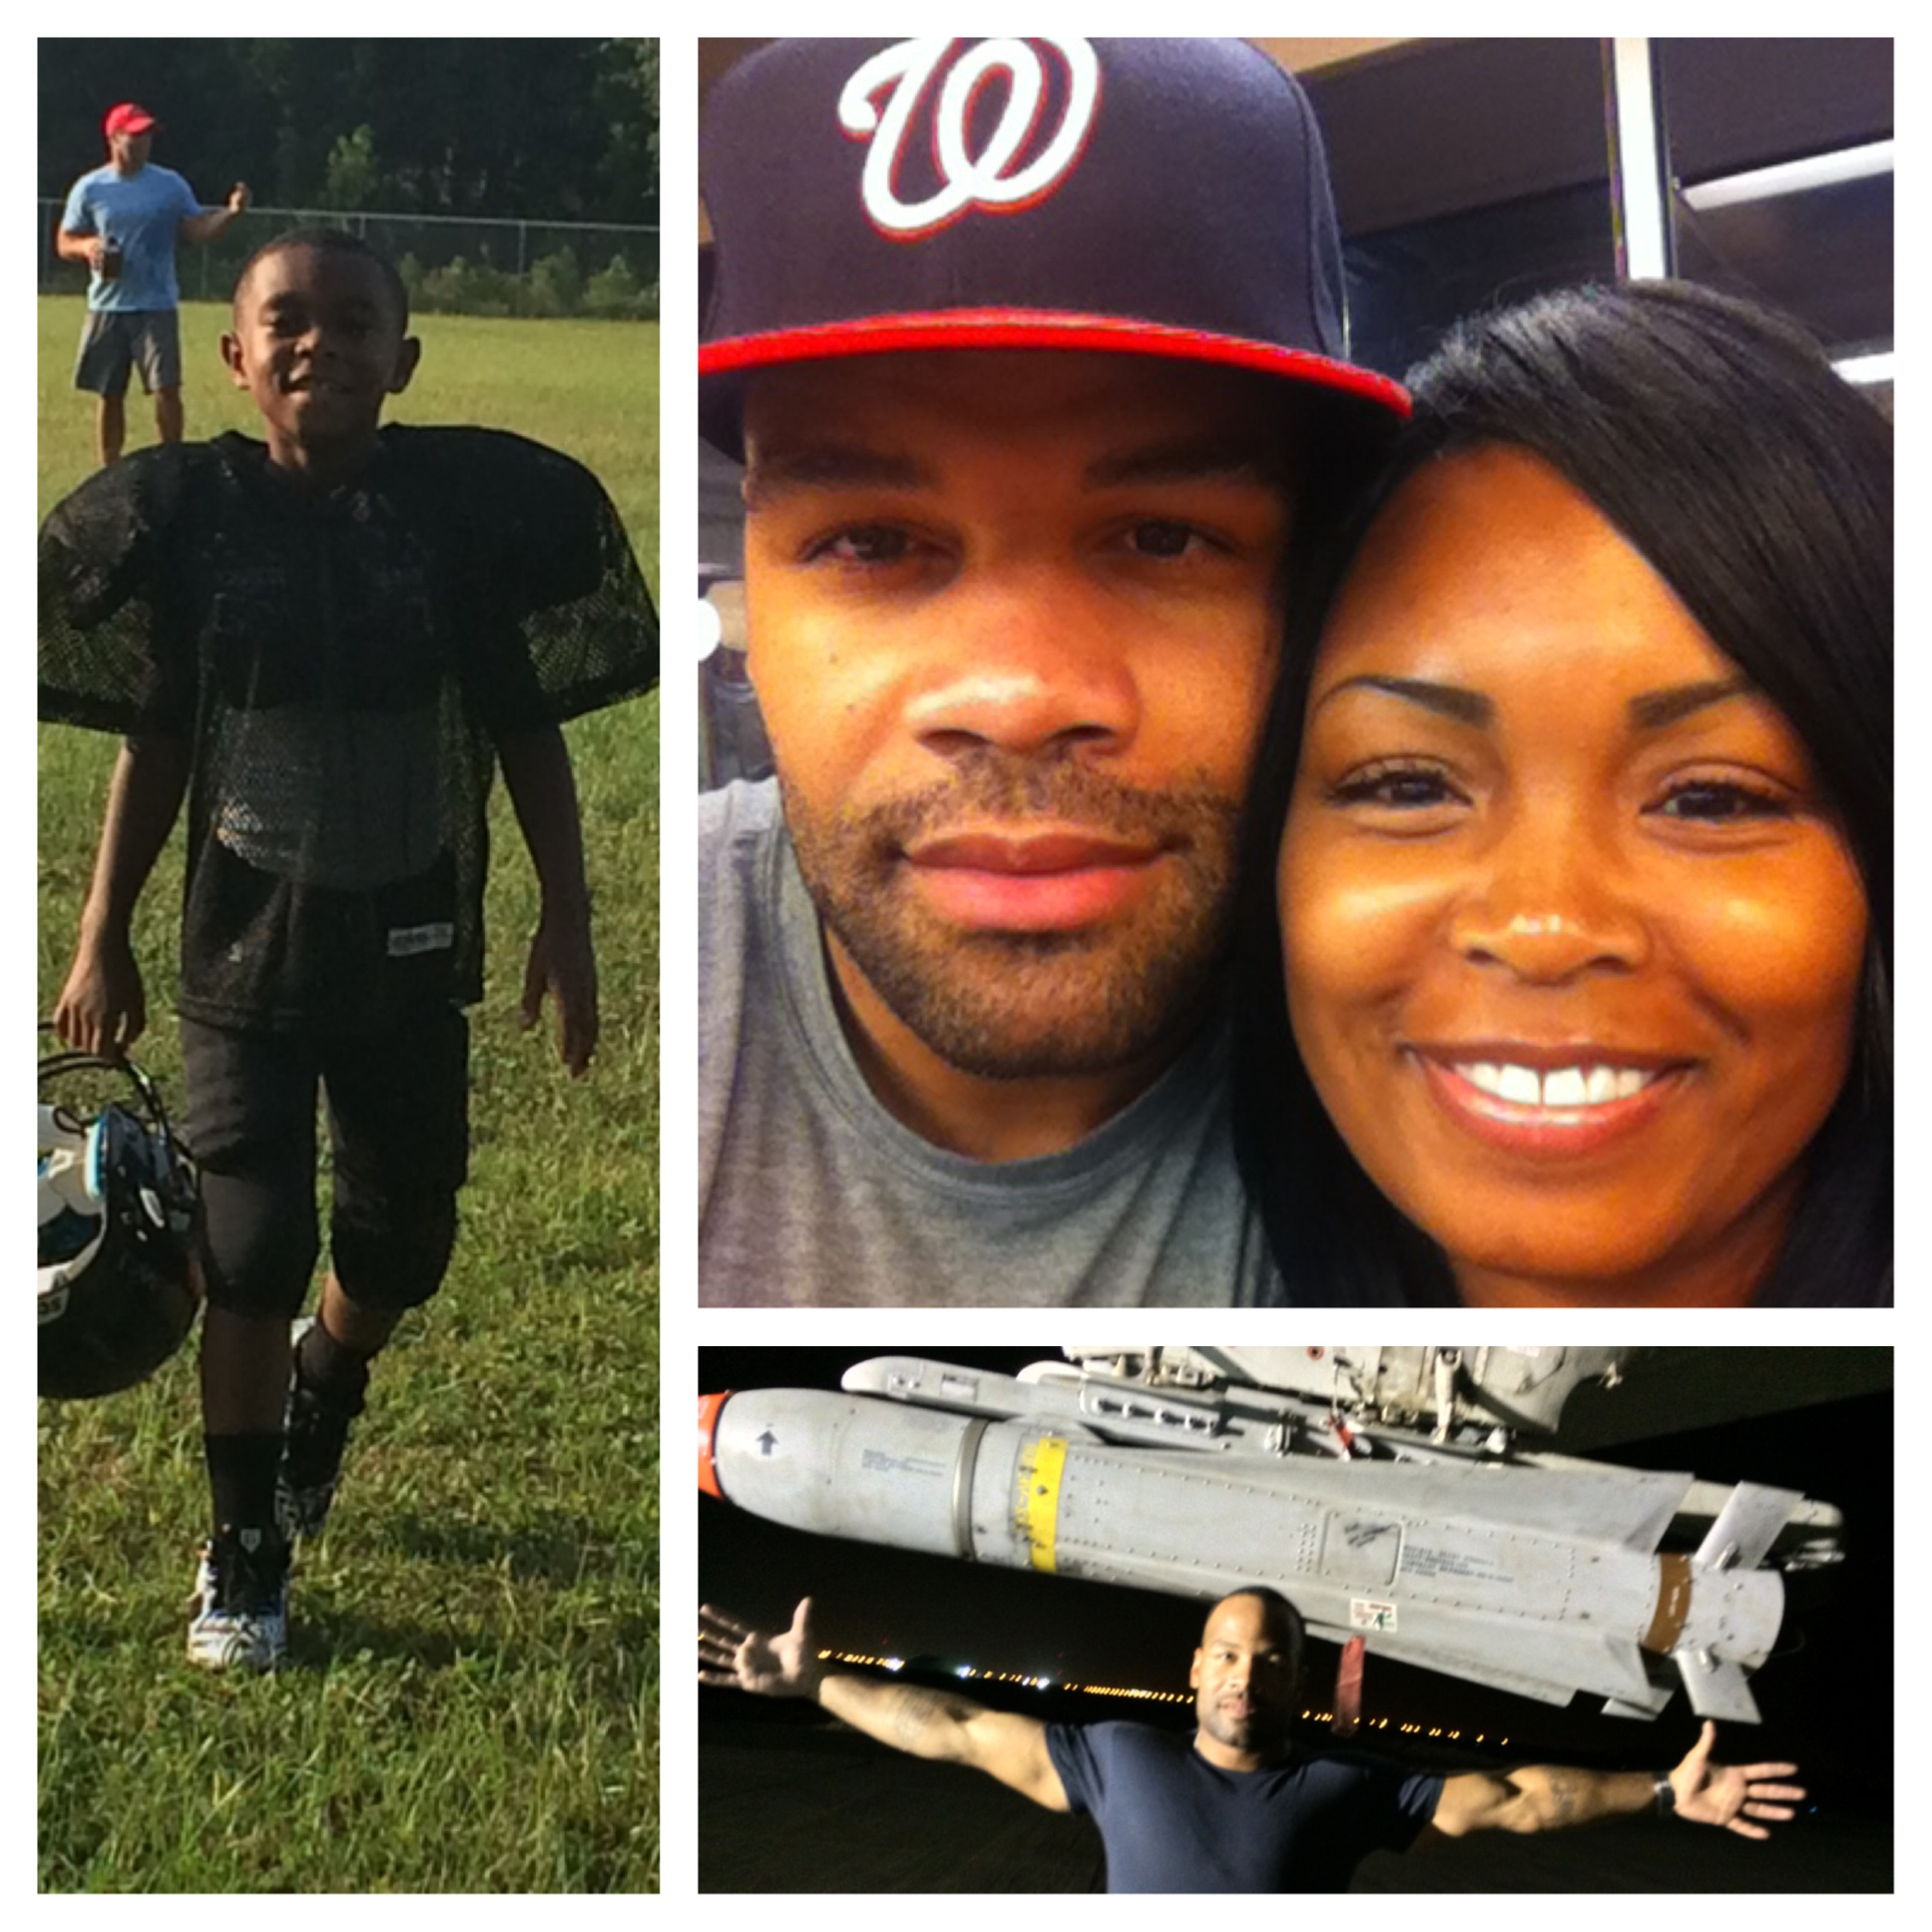 on the left, a photo of a middle-school aged boy with short brown hear wearing football padding and a black jersey; on the right, a close shot of a young woman with straight black hair and a young man with a blue baseball cap, both looking at the camera; on the bottom, a young man with large muscles wearing a blue t-shirt, standing arms outstretched in front of a model of a space ship.